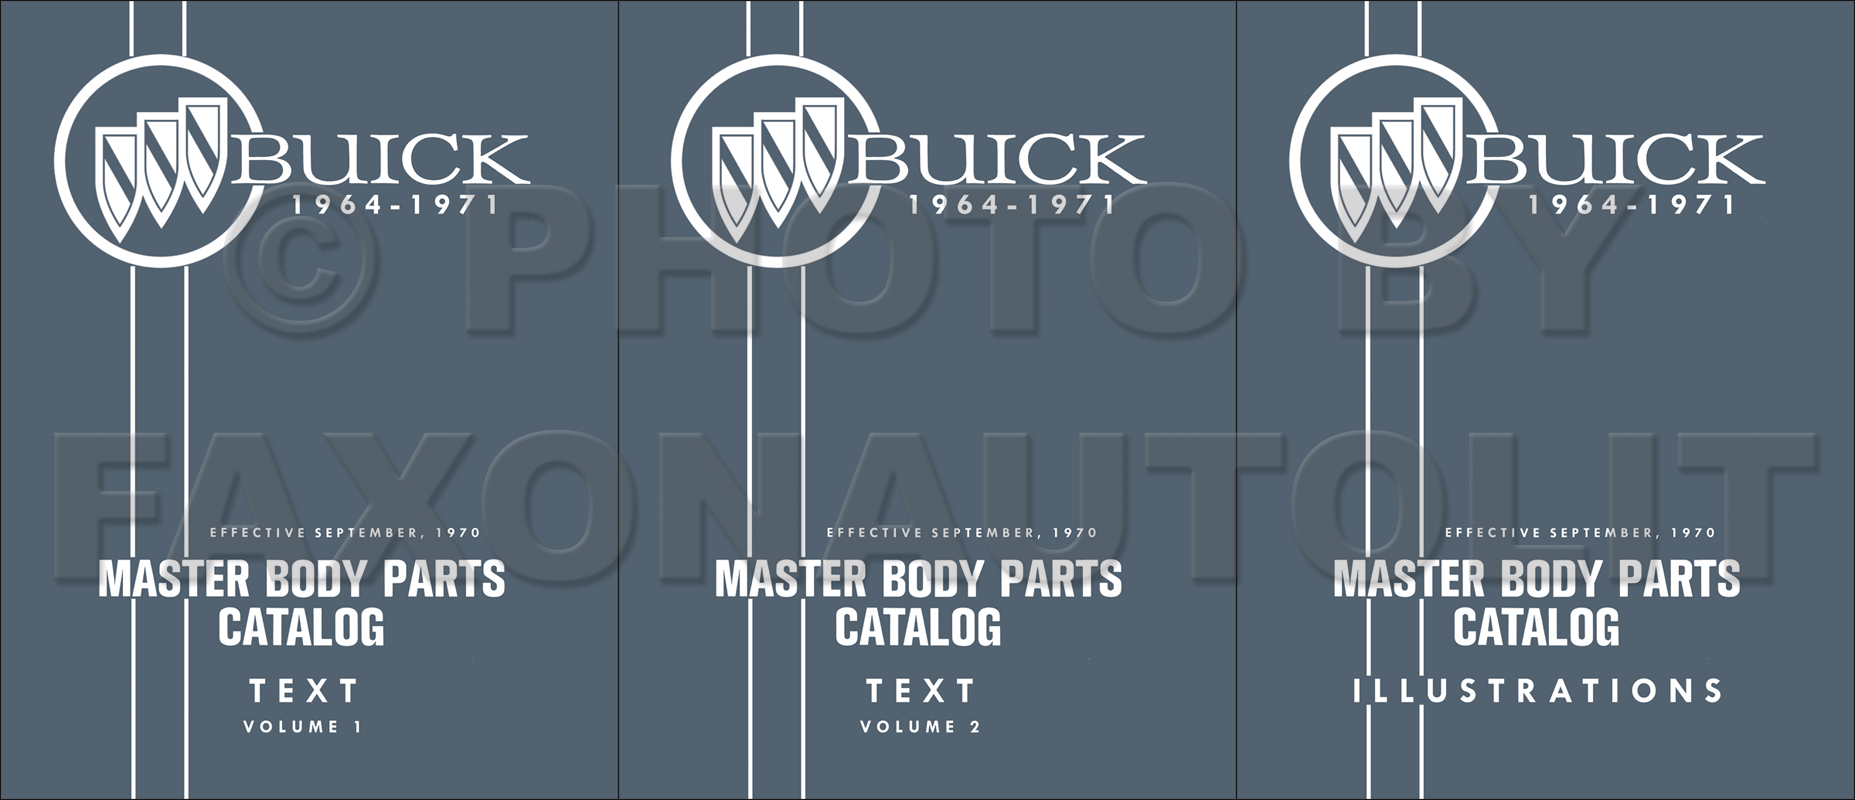 1964-1971 Buick Master Body Parts Book Reprint--All Models 3 Volume Set